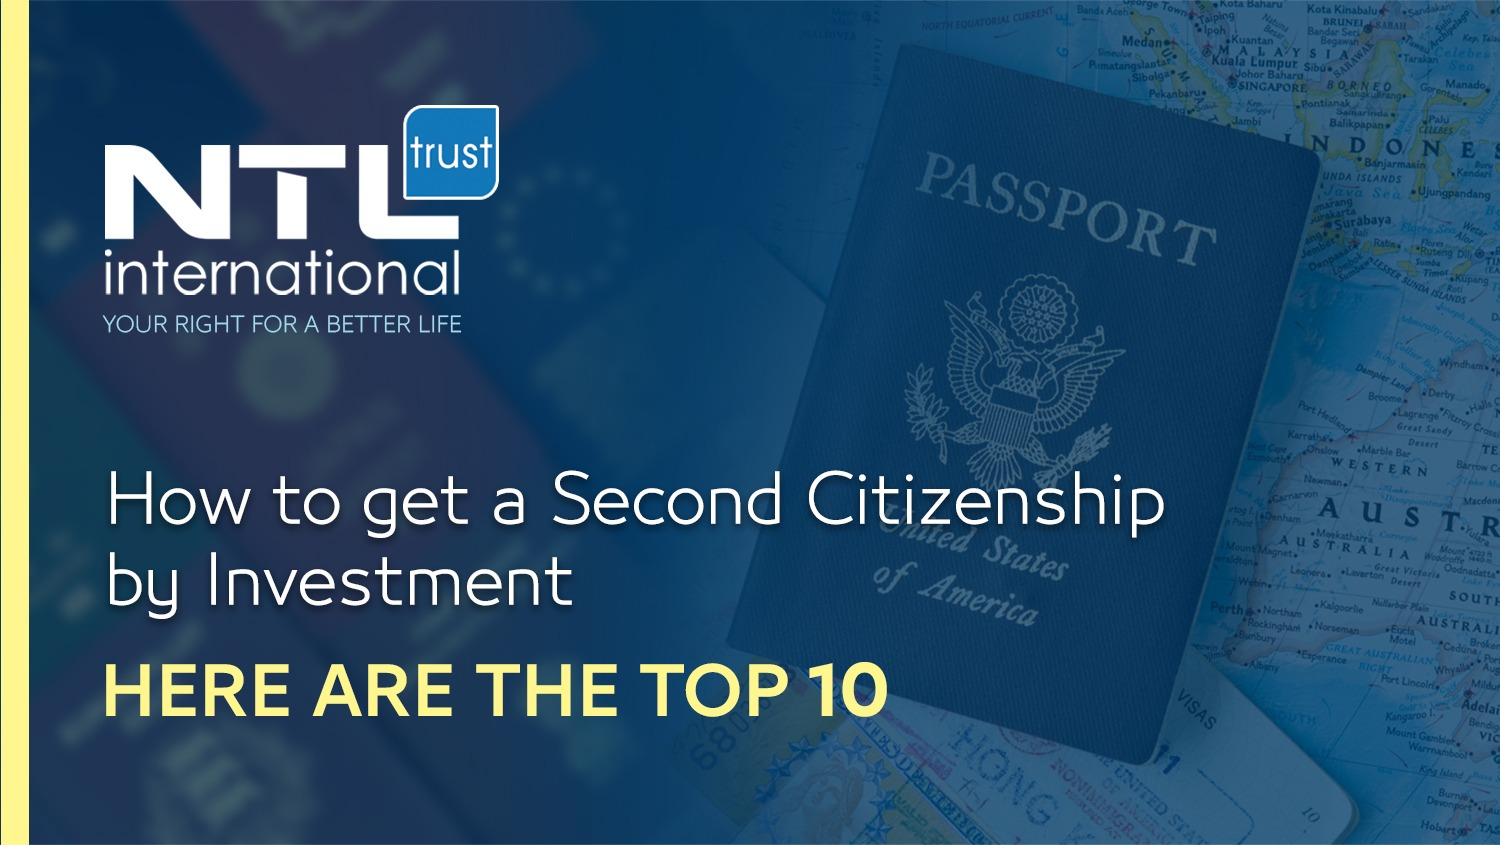 NTL international How to get the best citizenship by investment